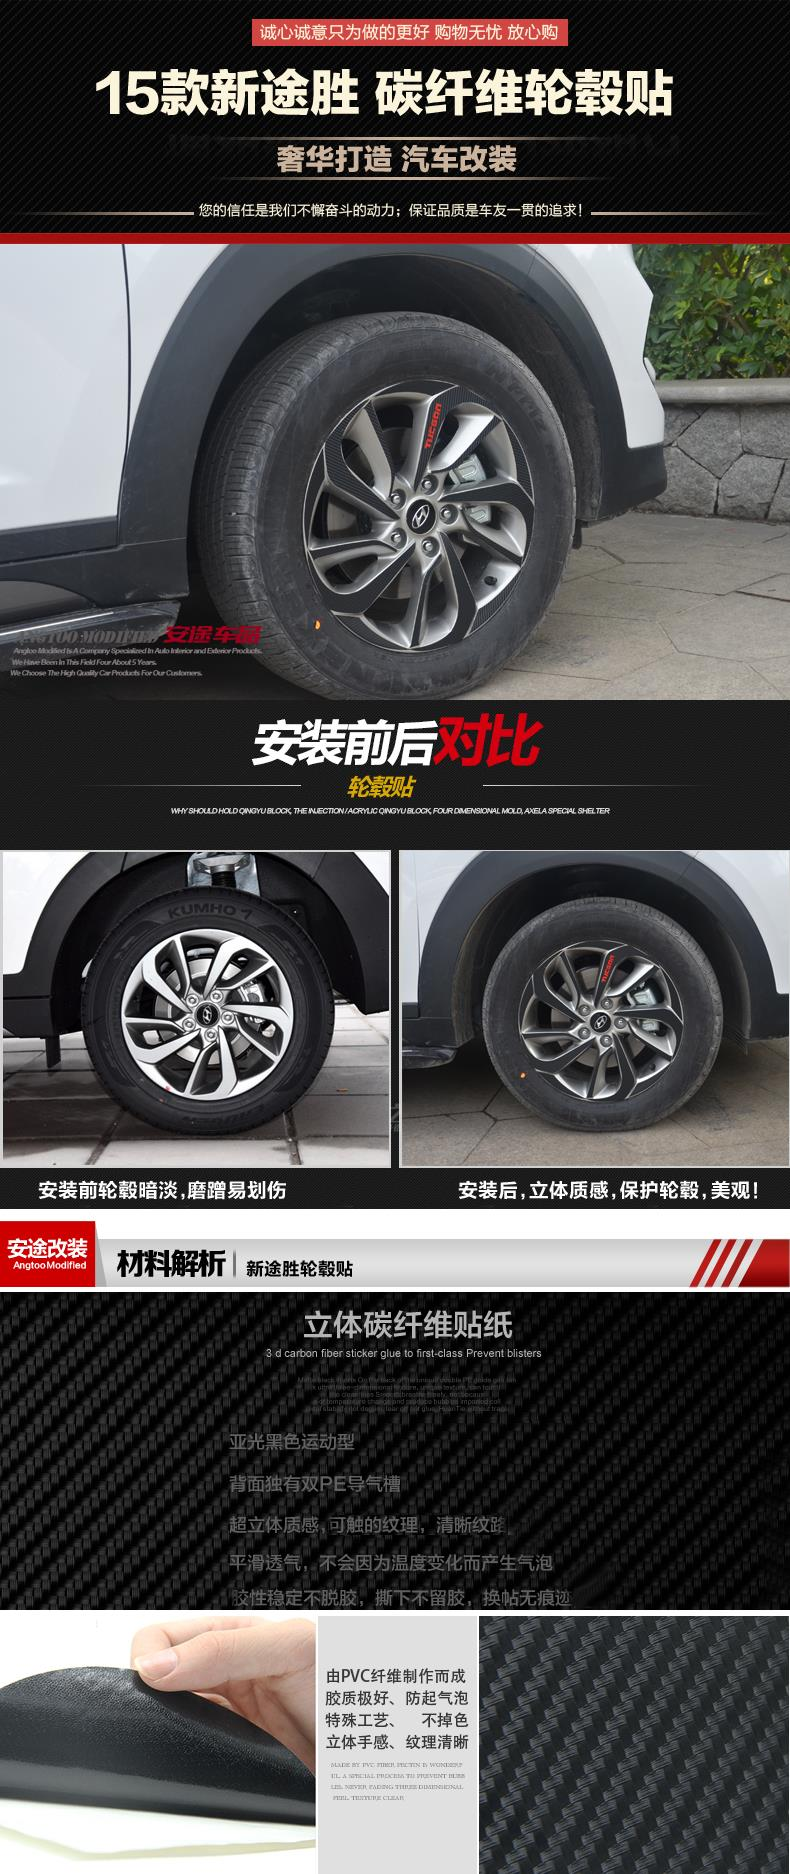 Us 12 9 Tucson Carbon Fiber Wheels Car Stickers Affixed Wheel Hub Special Modification Used For Hyundai 2016 2018 In